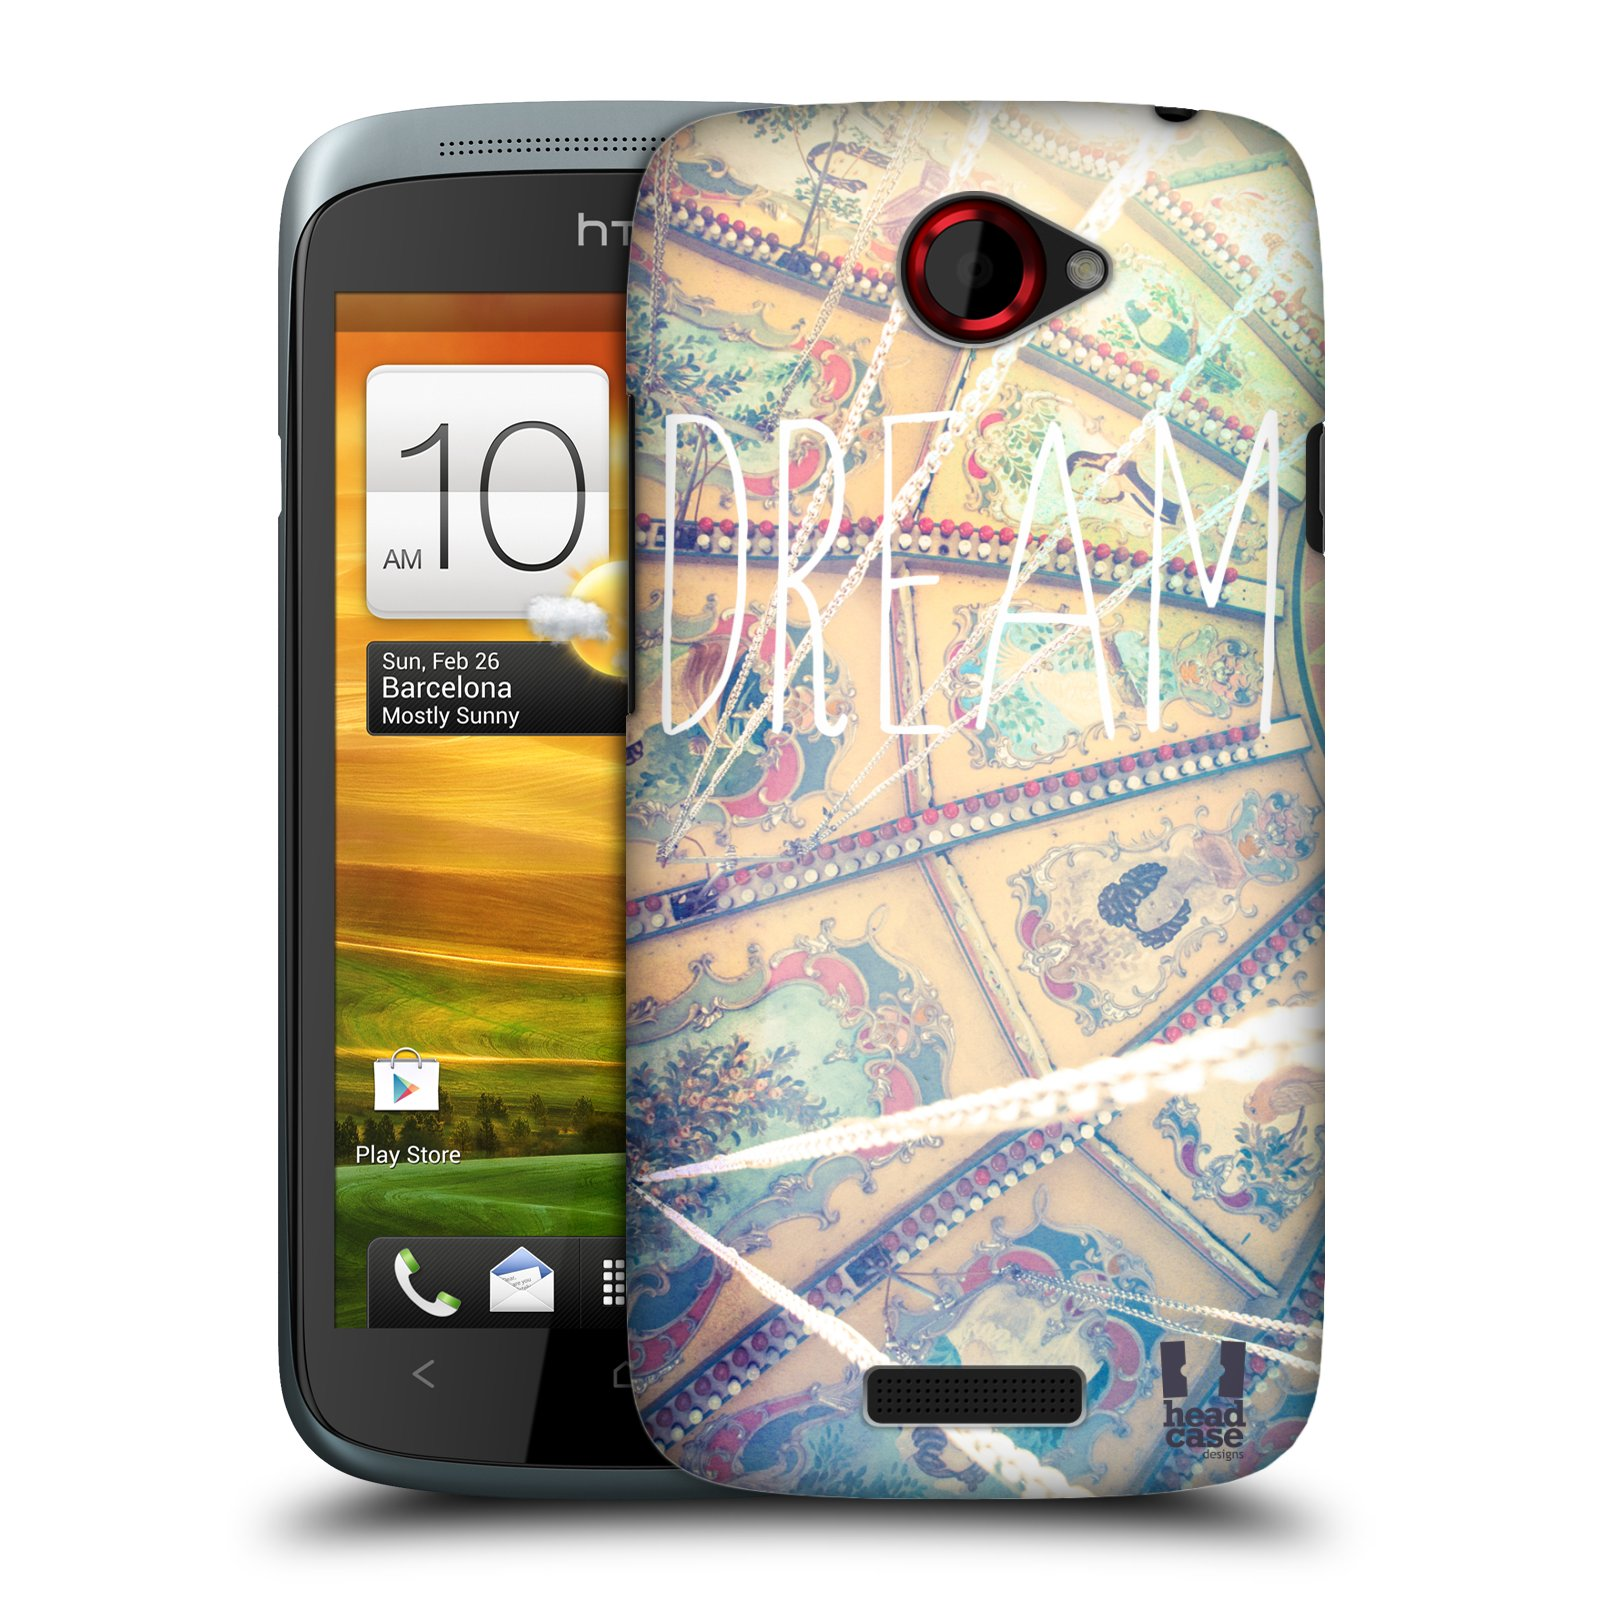 HEAD CASE DESIGNS POSITIVE VIBES SERIES 1 CASE COVER FOR HTC ONE S